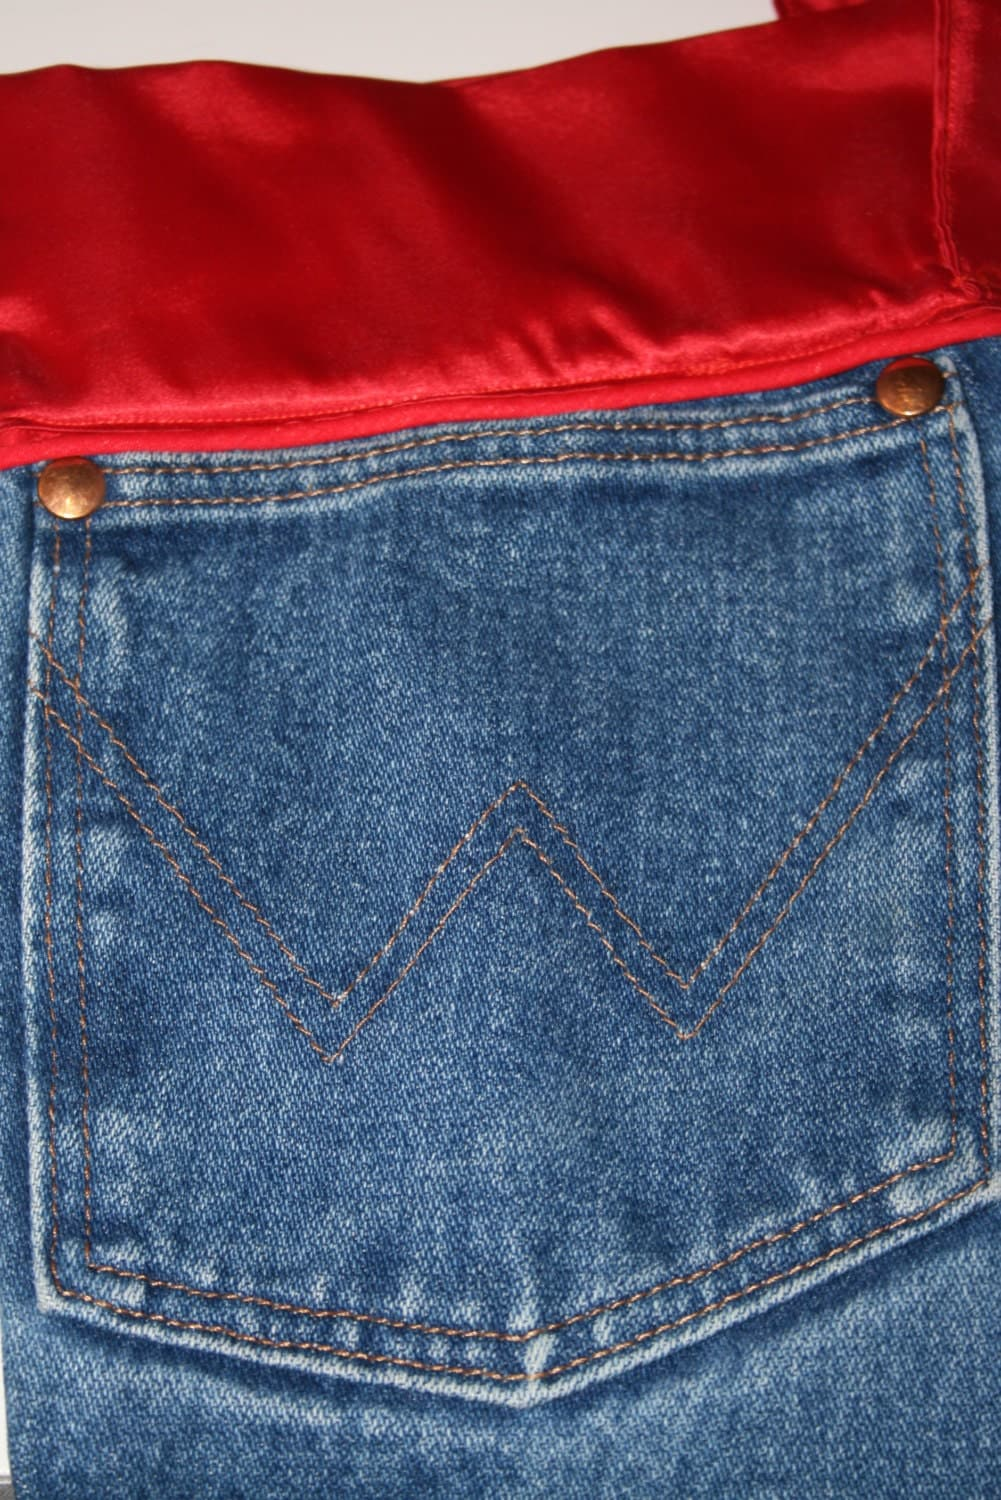 denim christmas stocking made from wrangler jeans with red. Black Bedroom Furniture Sets. Home Design Ideas